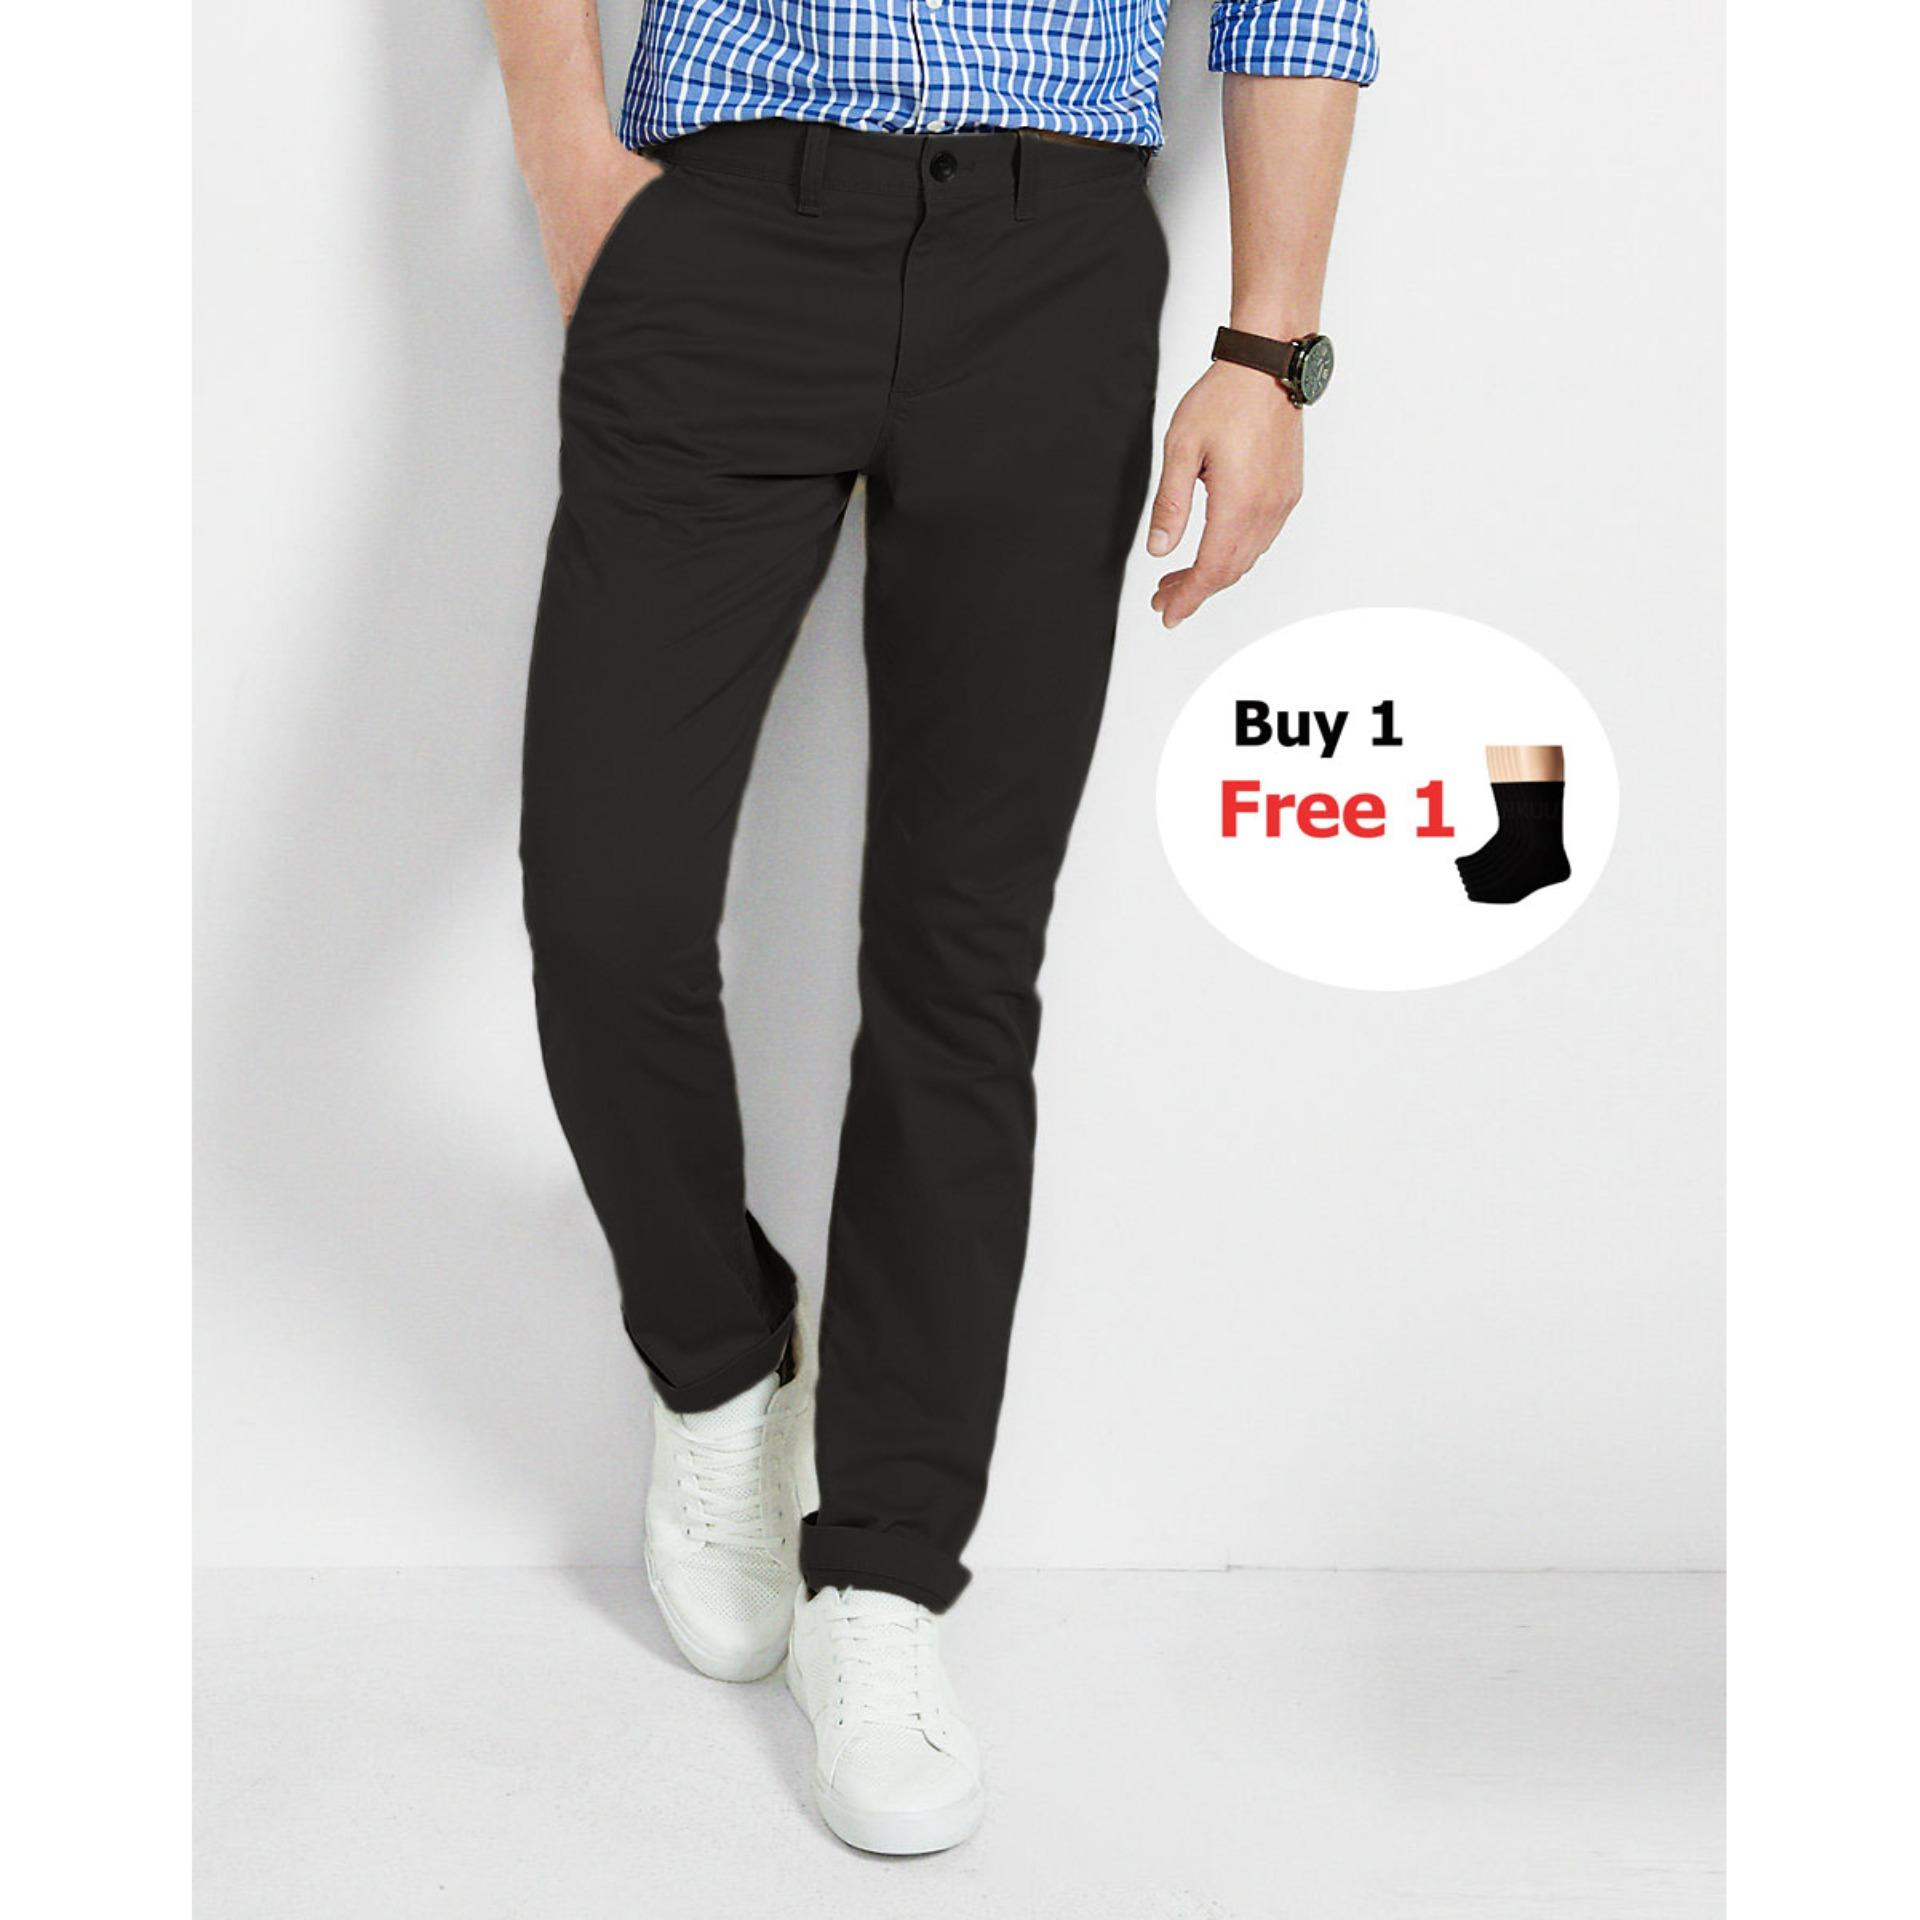 CHINO PANJANG SLIMFIT WR HITAM HIGH QUALITY